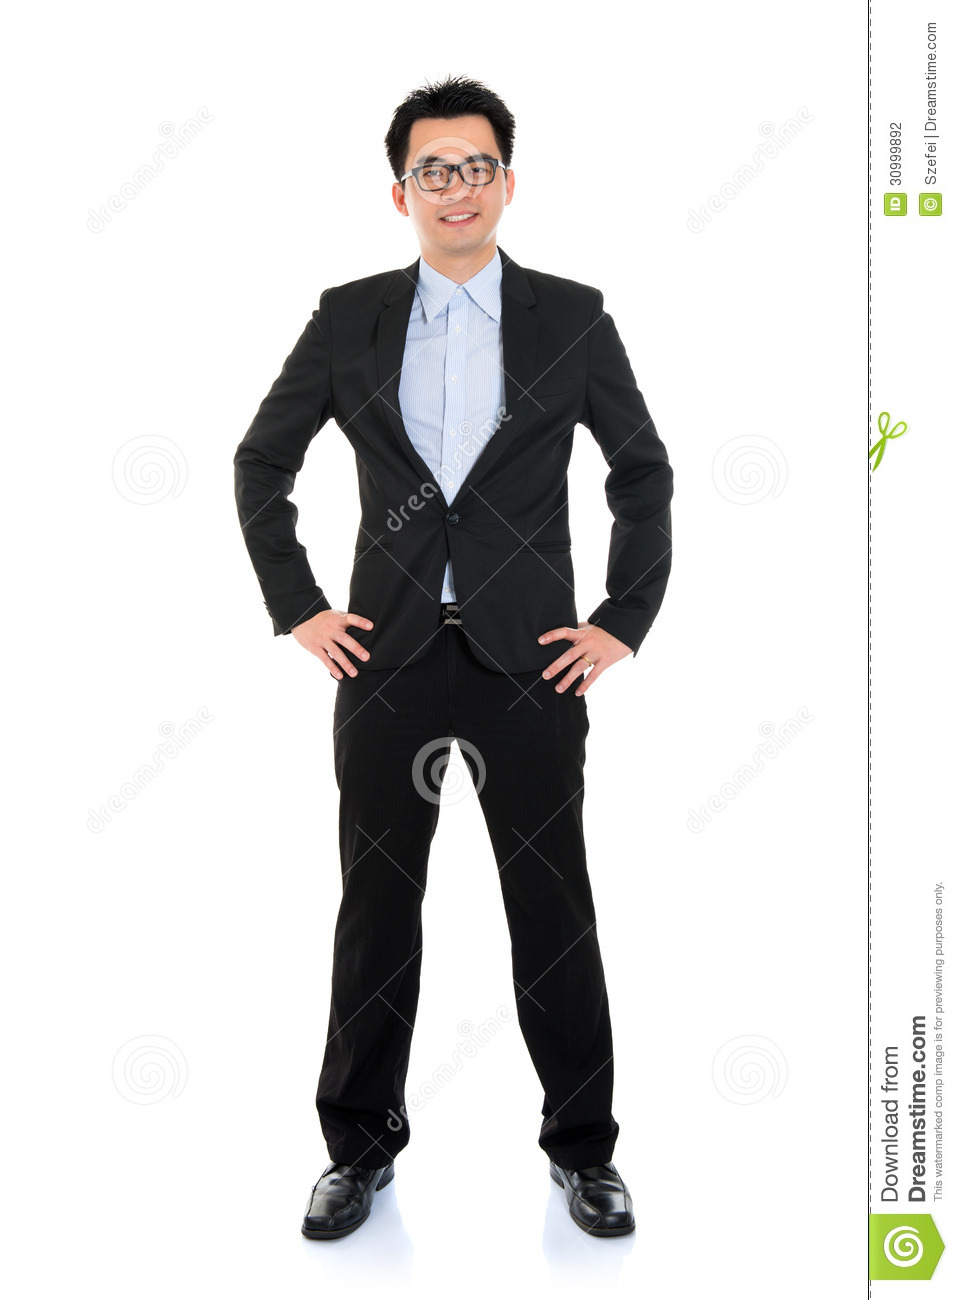 full-body-asian-business-man-portrait-happy-smiling-isolated-white-background-30999892.jpg